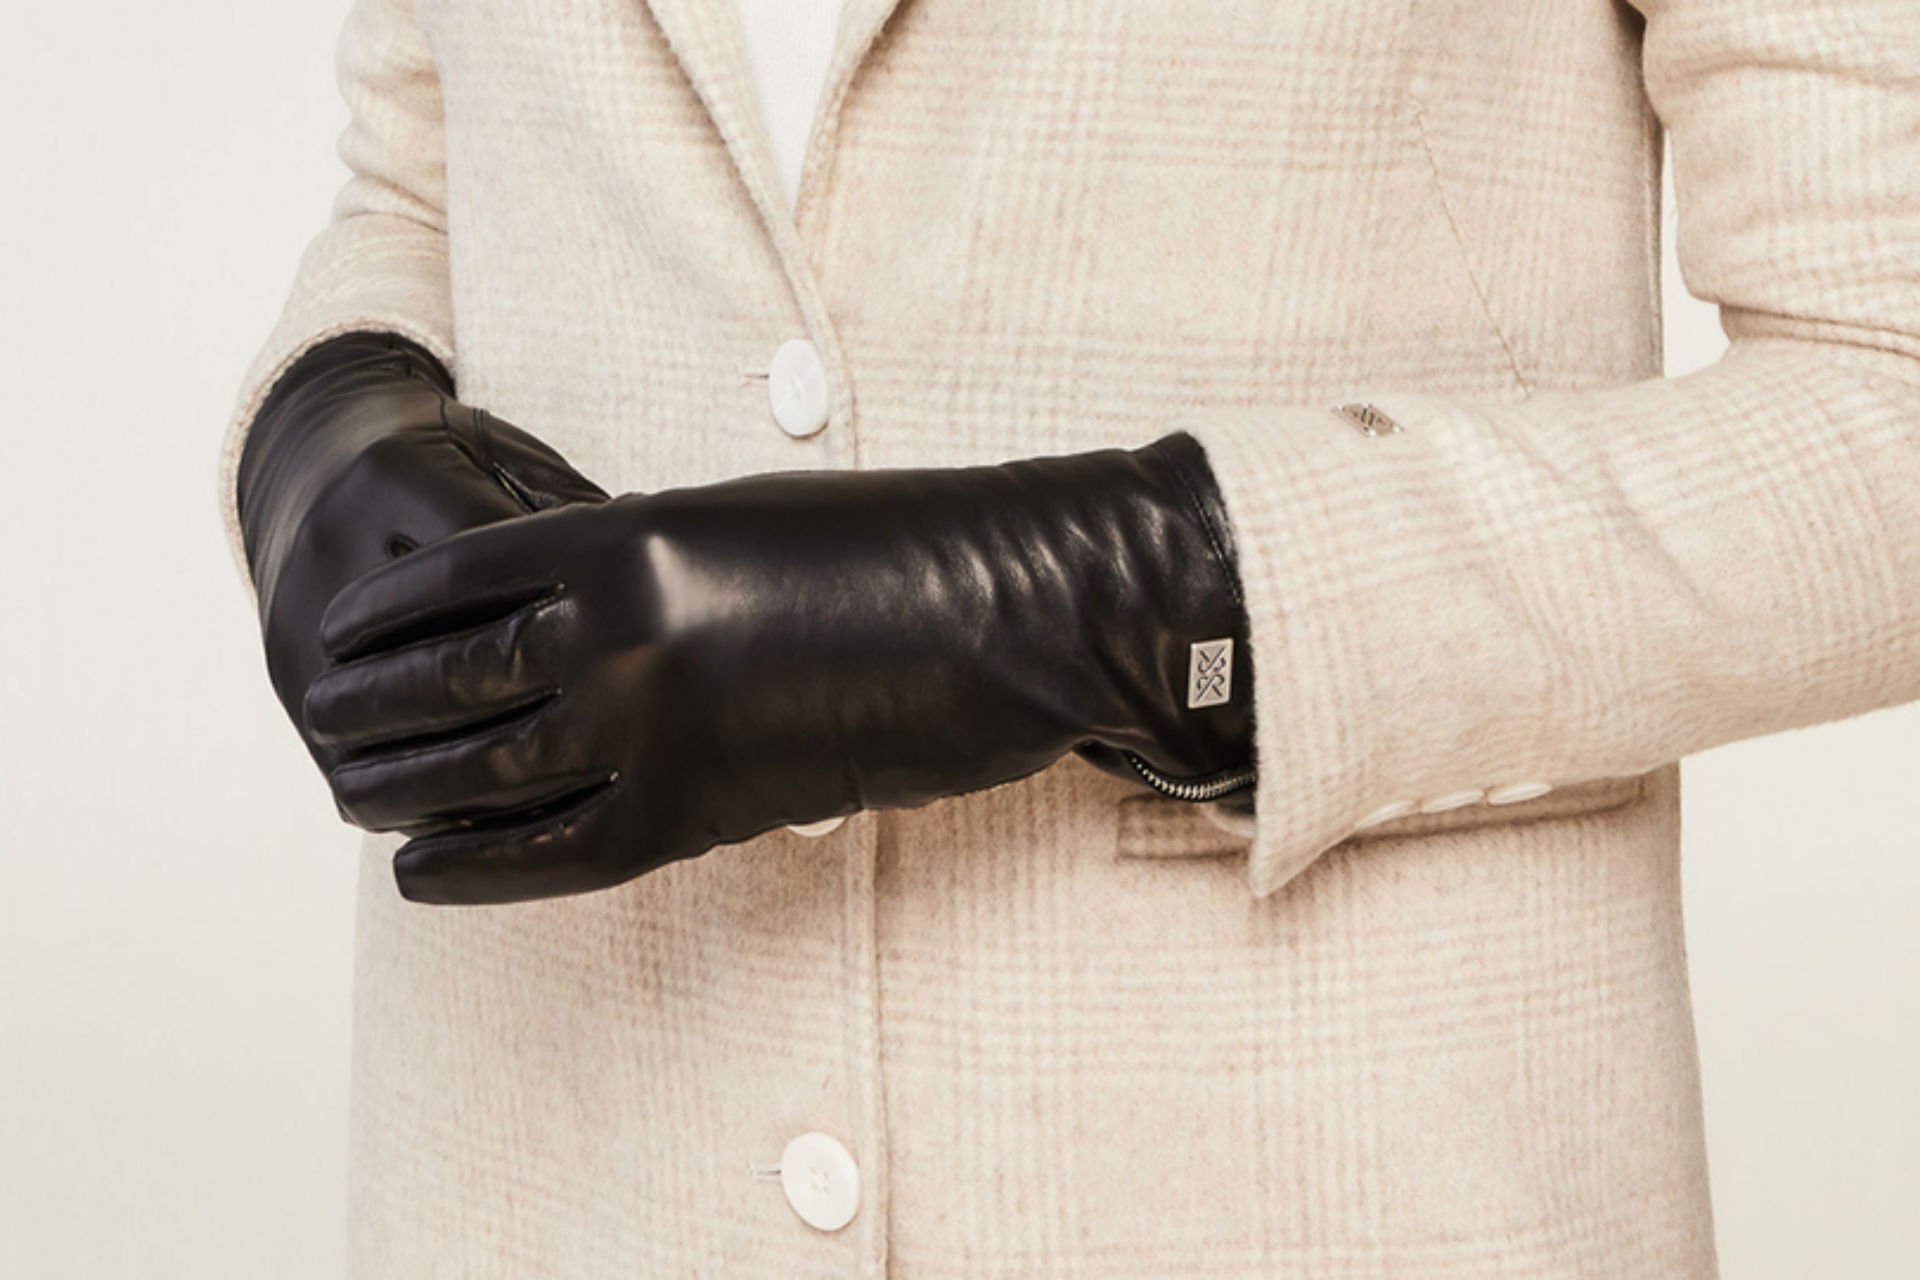 MEENA cuffed leather gloves with tech-friendly tips